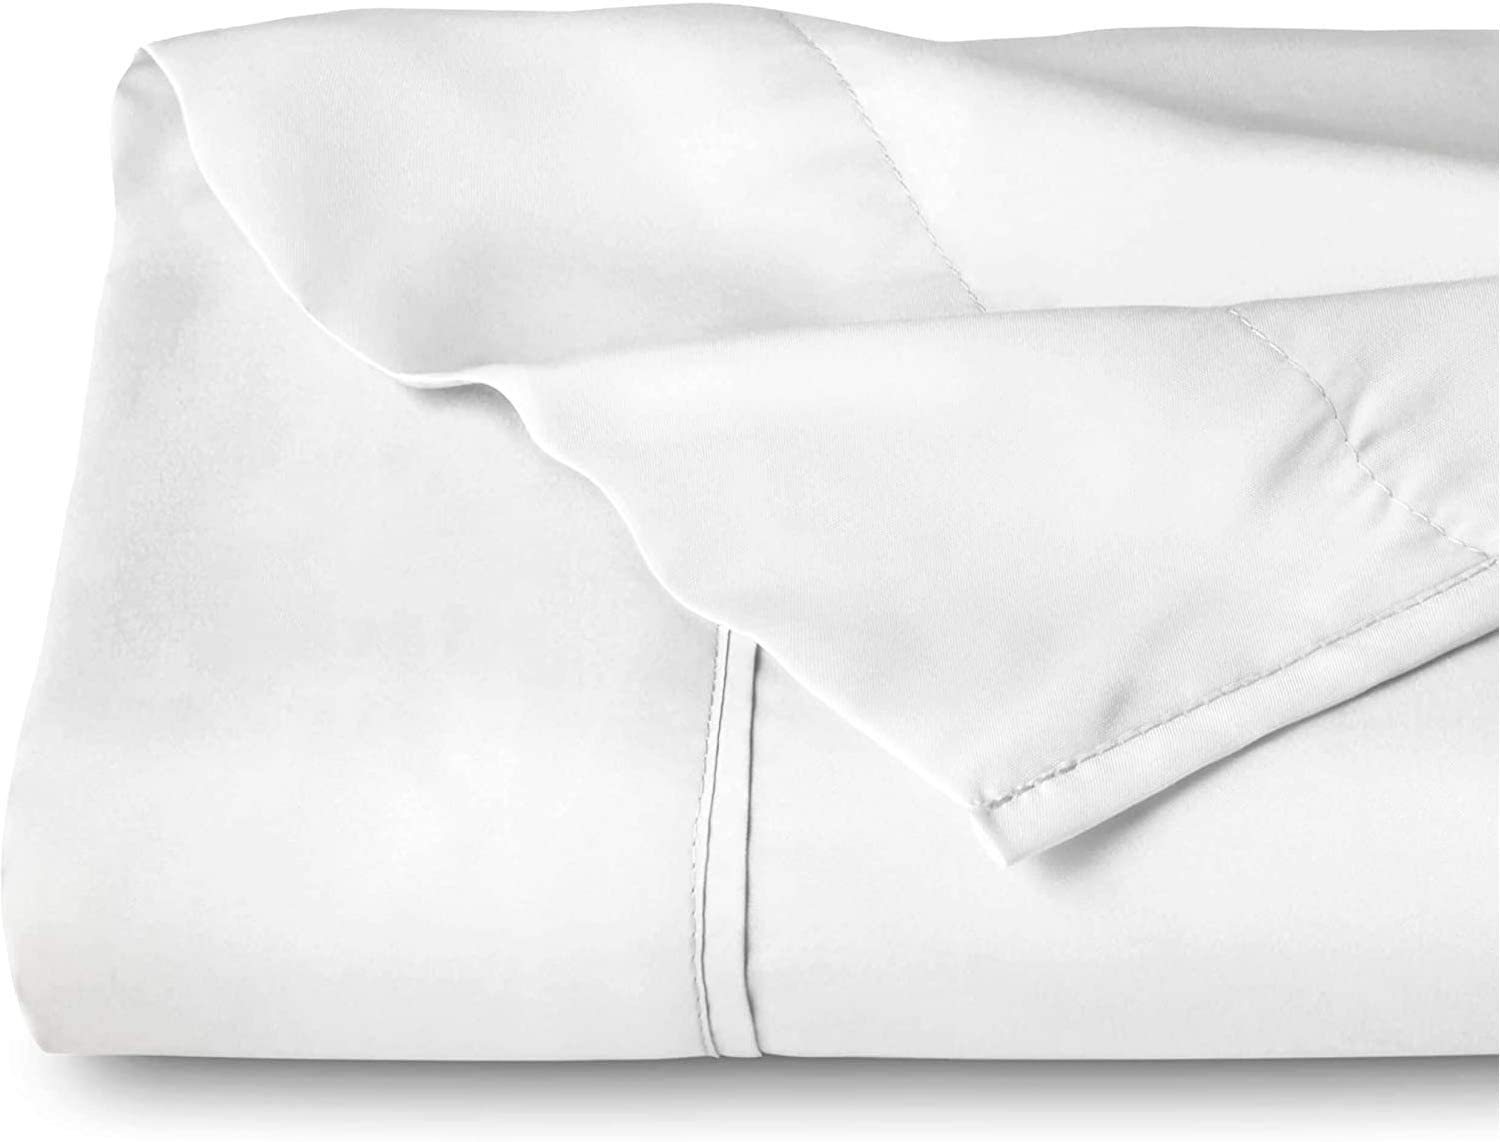 Bare Home Flat Top Sheet Premium 1800 Ultra-Soft Microfiber Collection - Double Brushed, Hypoallergenic, Wrinkle Resistant, Easy Care (King, White)